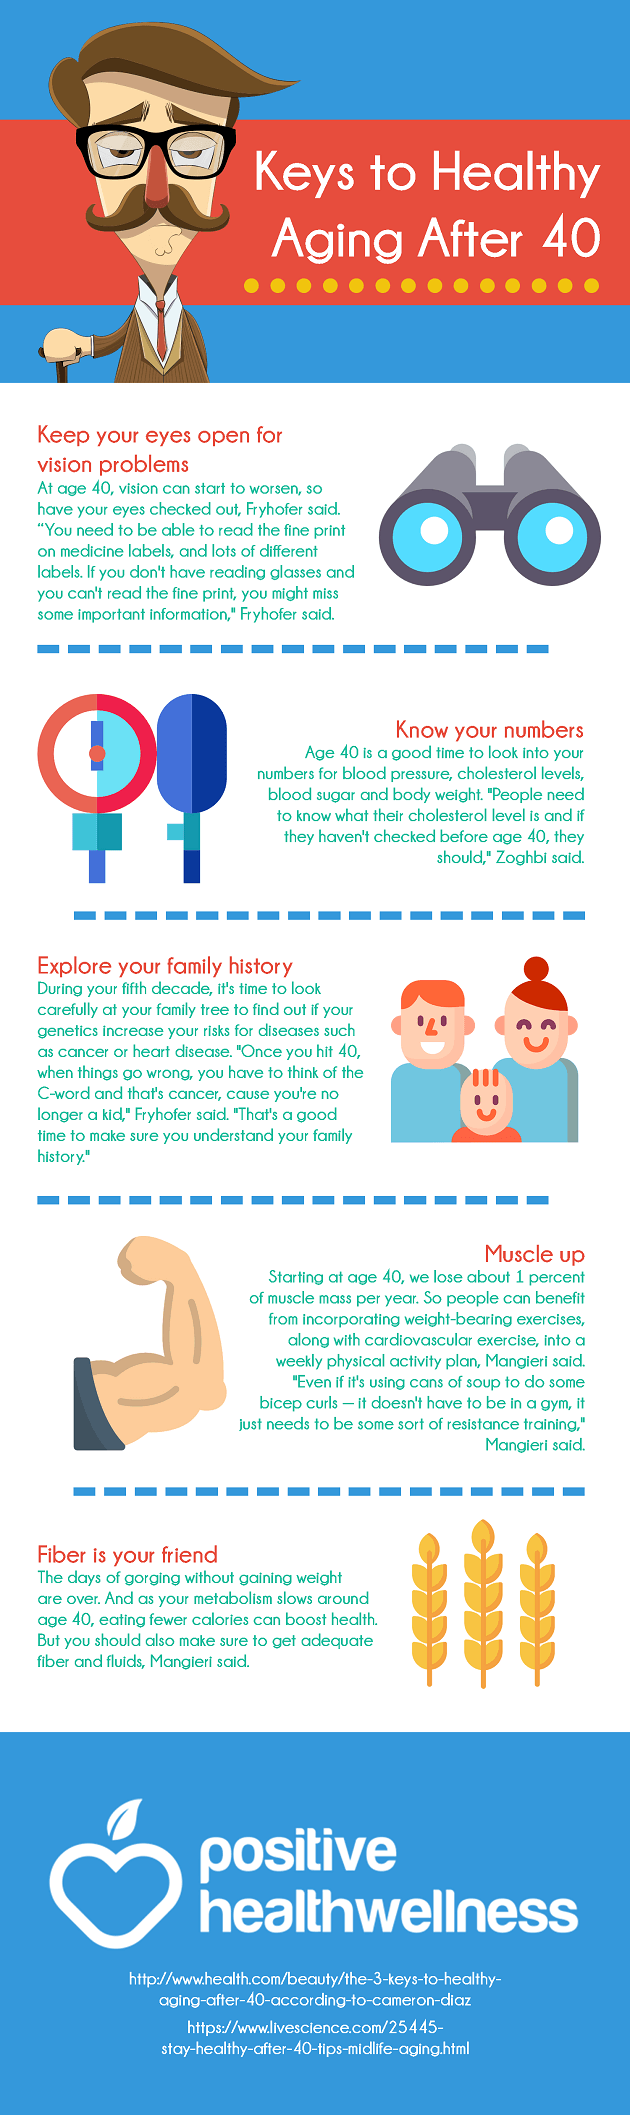 The 3 Keys To Healthy Aging After 40